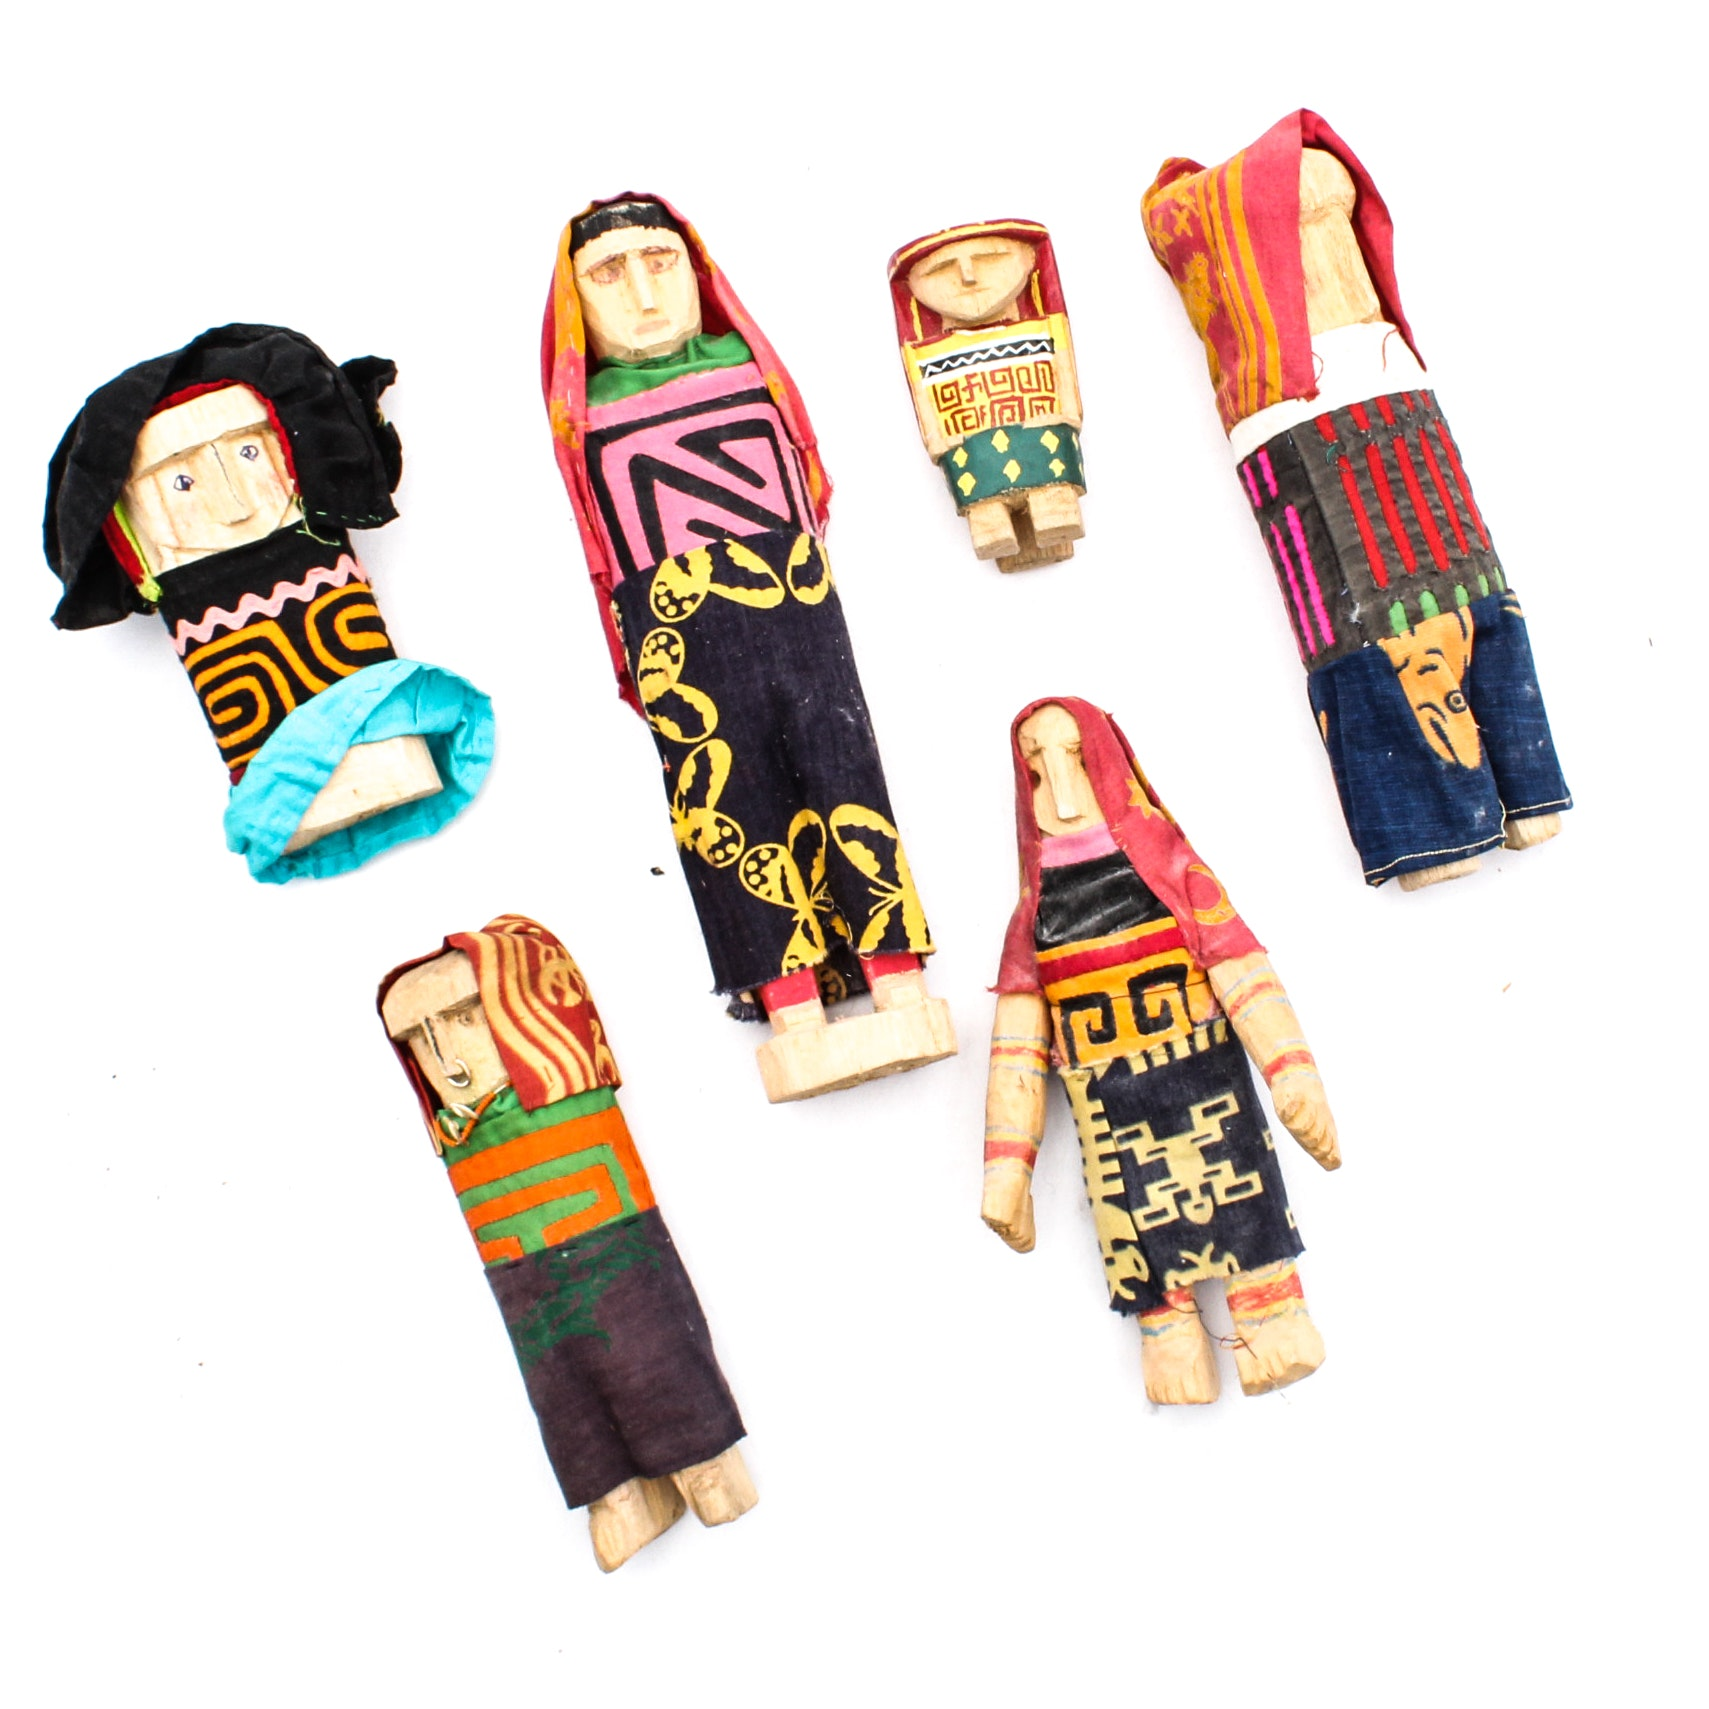 Panamanian Carved Figures with Mola Clothing